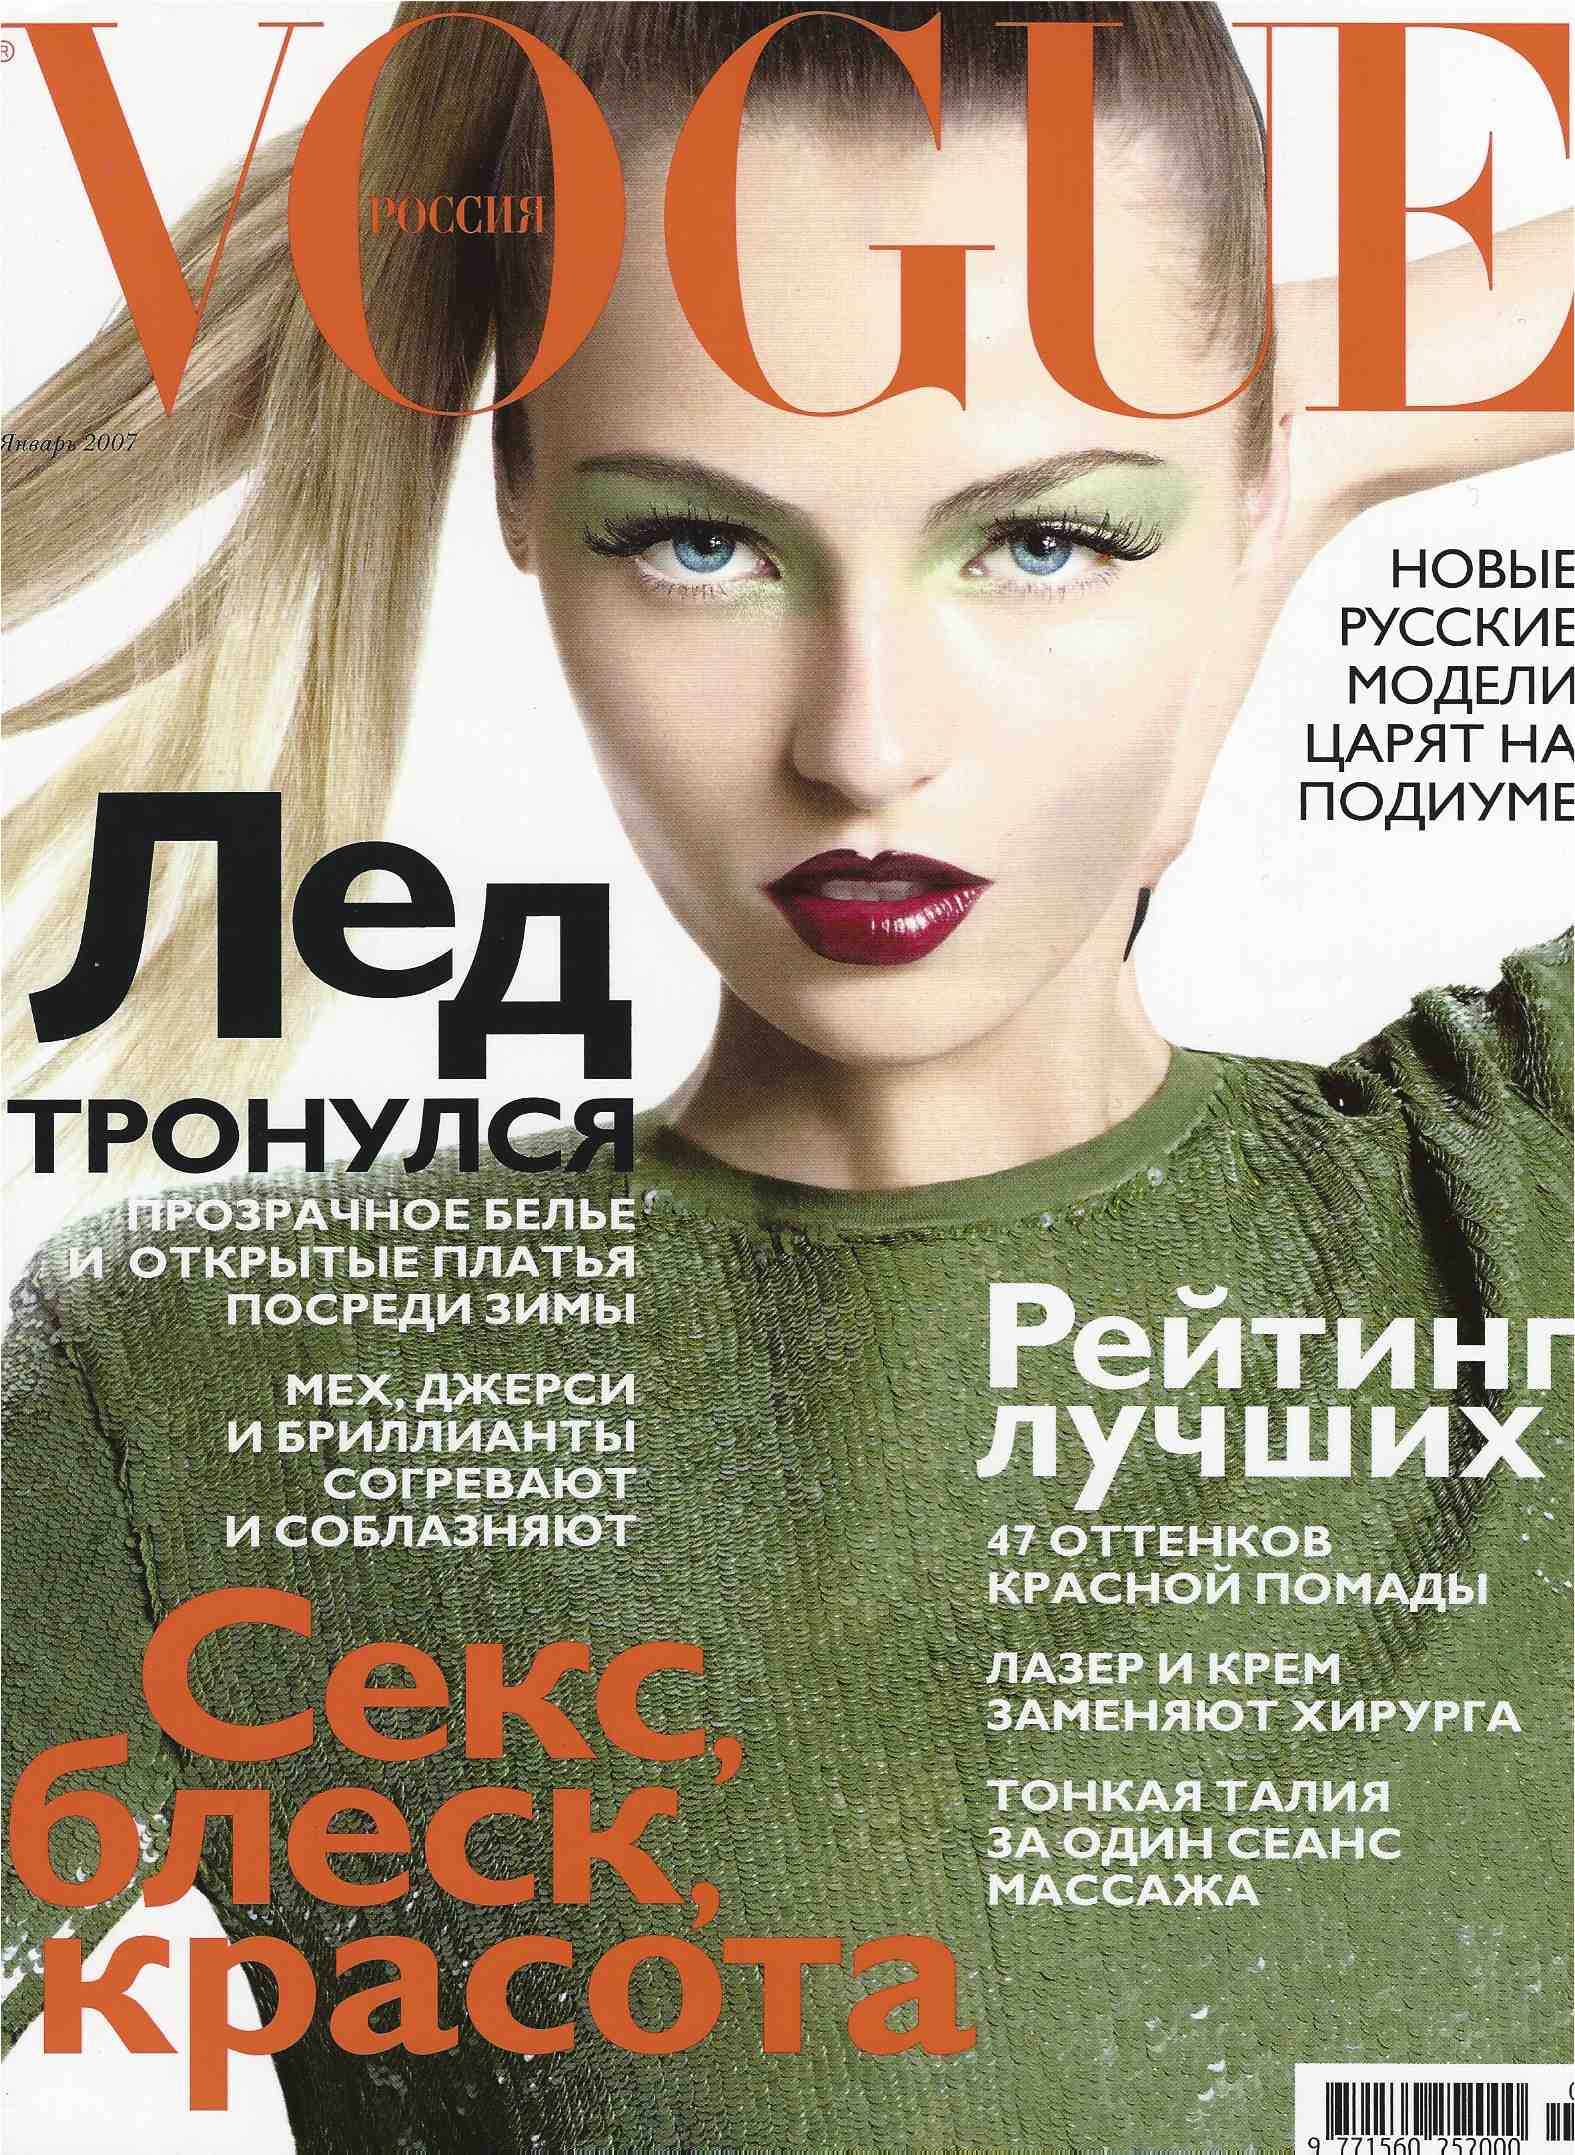 Lee Broomfield - Russian Vogue Cover copy.jpg